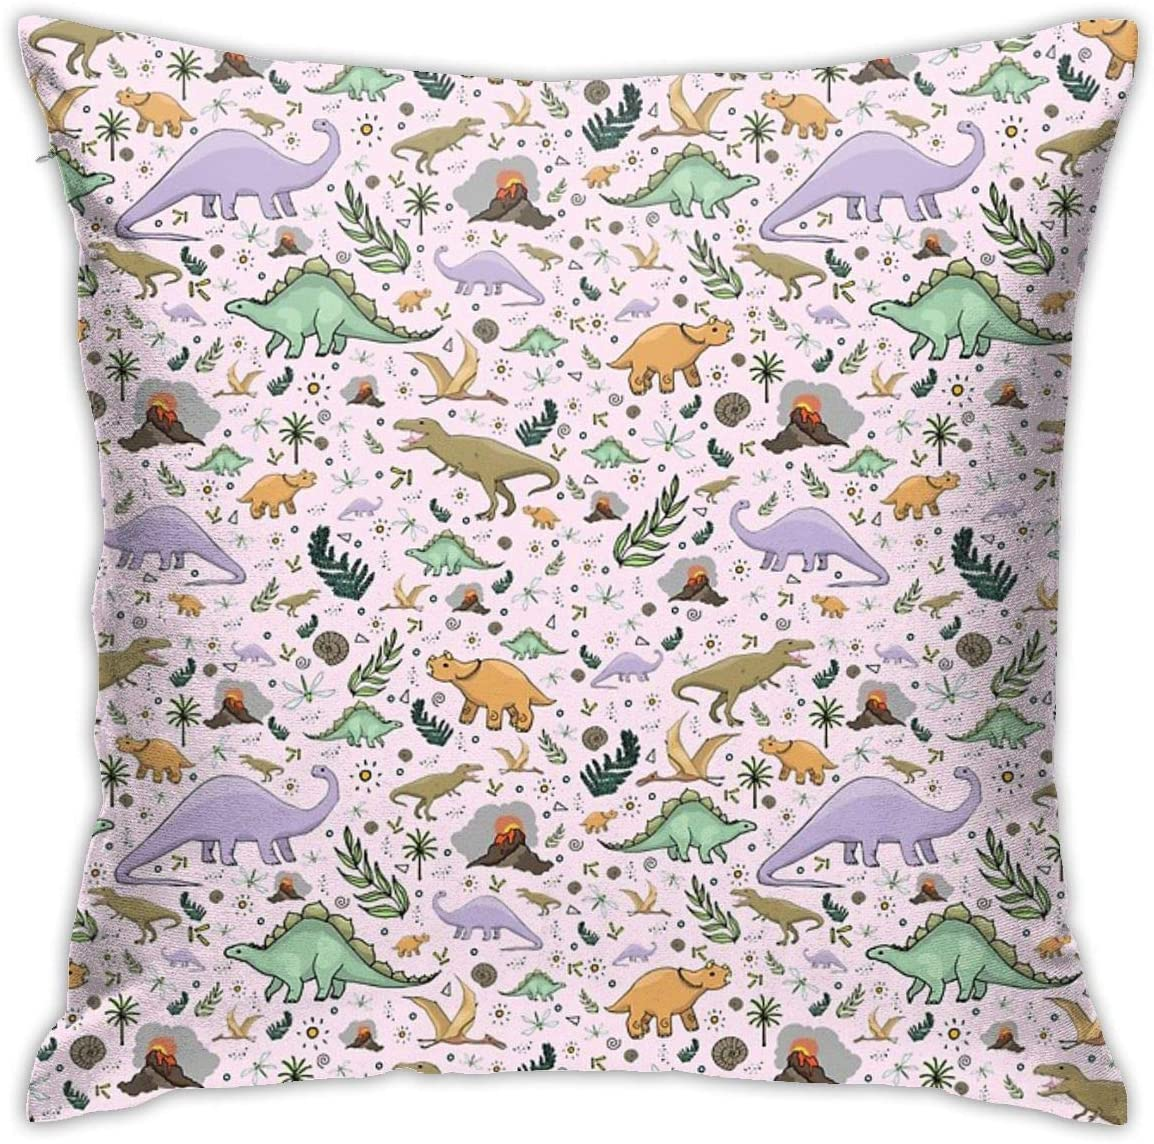 NYF Home Decor Dinosaurs in Pink Square Throw Pillow Cushion Covers Pillow Case, Soft Decorative Pillowcase for Couch Chair